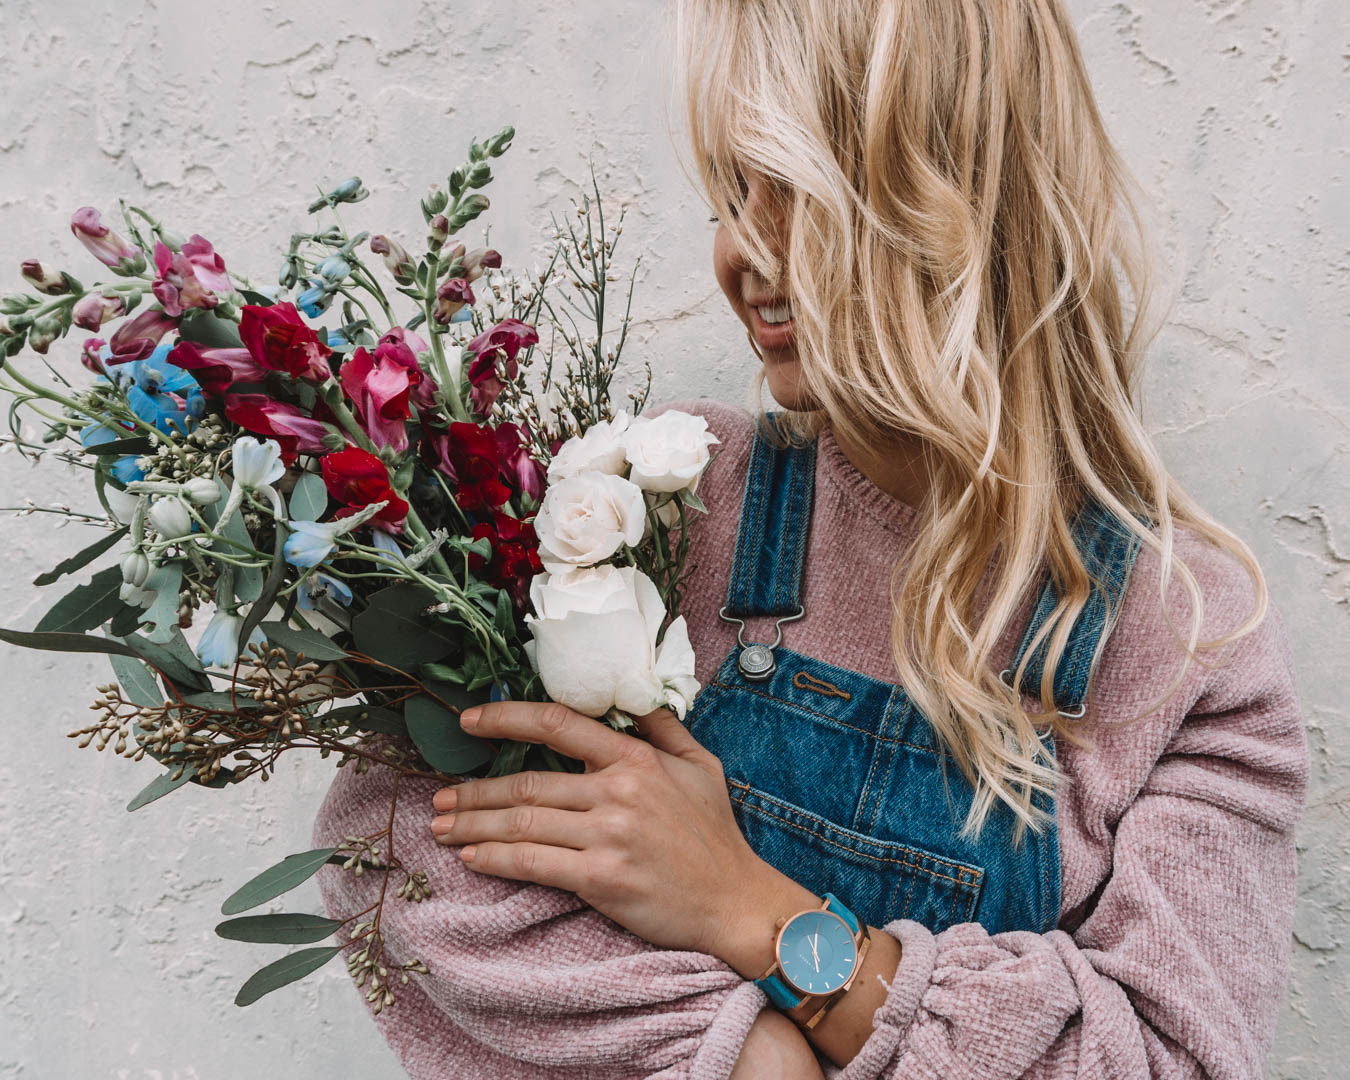 How to make your fresh flowers last light by megan rae its that time of year where your significant other just bought you beautiful fresh flowers for you or you got them for yourself so why not make them izmirmasajfo Gallery